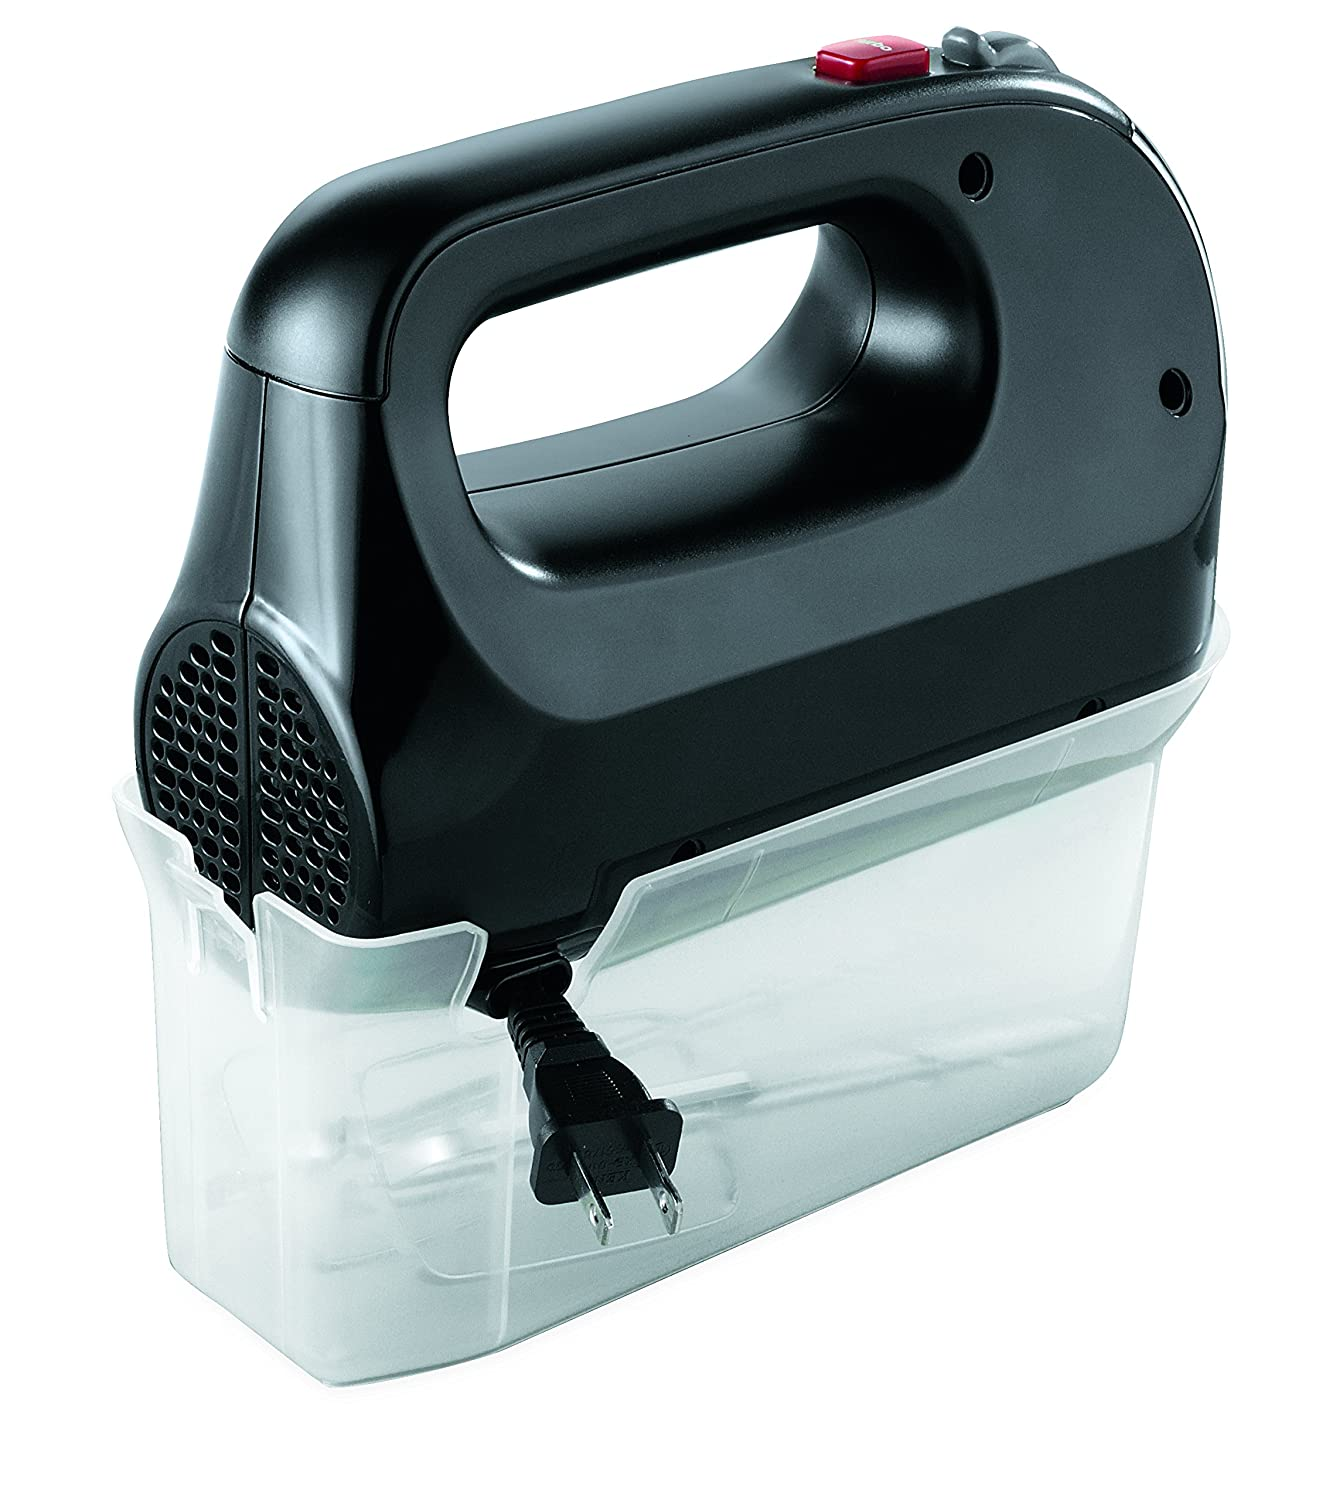 Black Oster FPSTHM0152-NP 5 Speed Hand Mixer with Storage Case